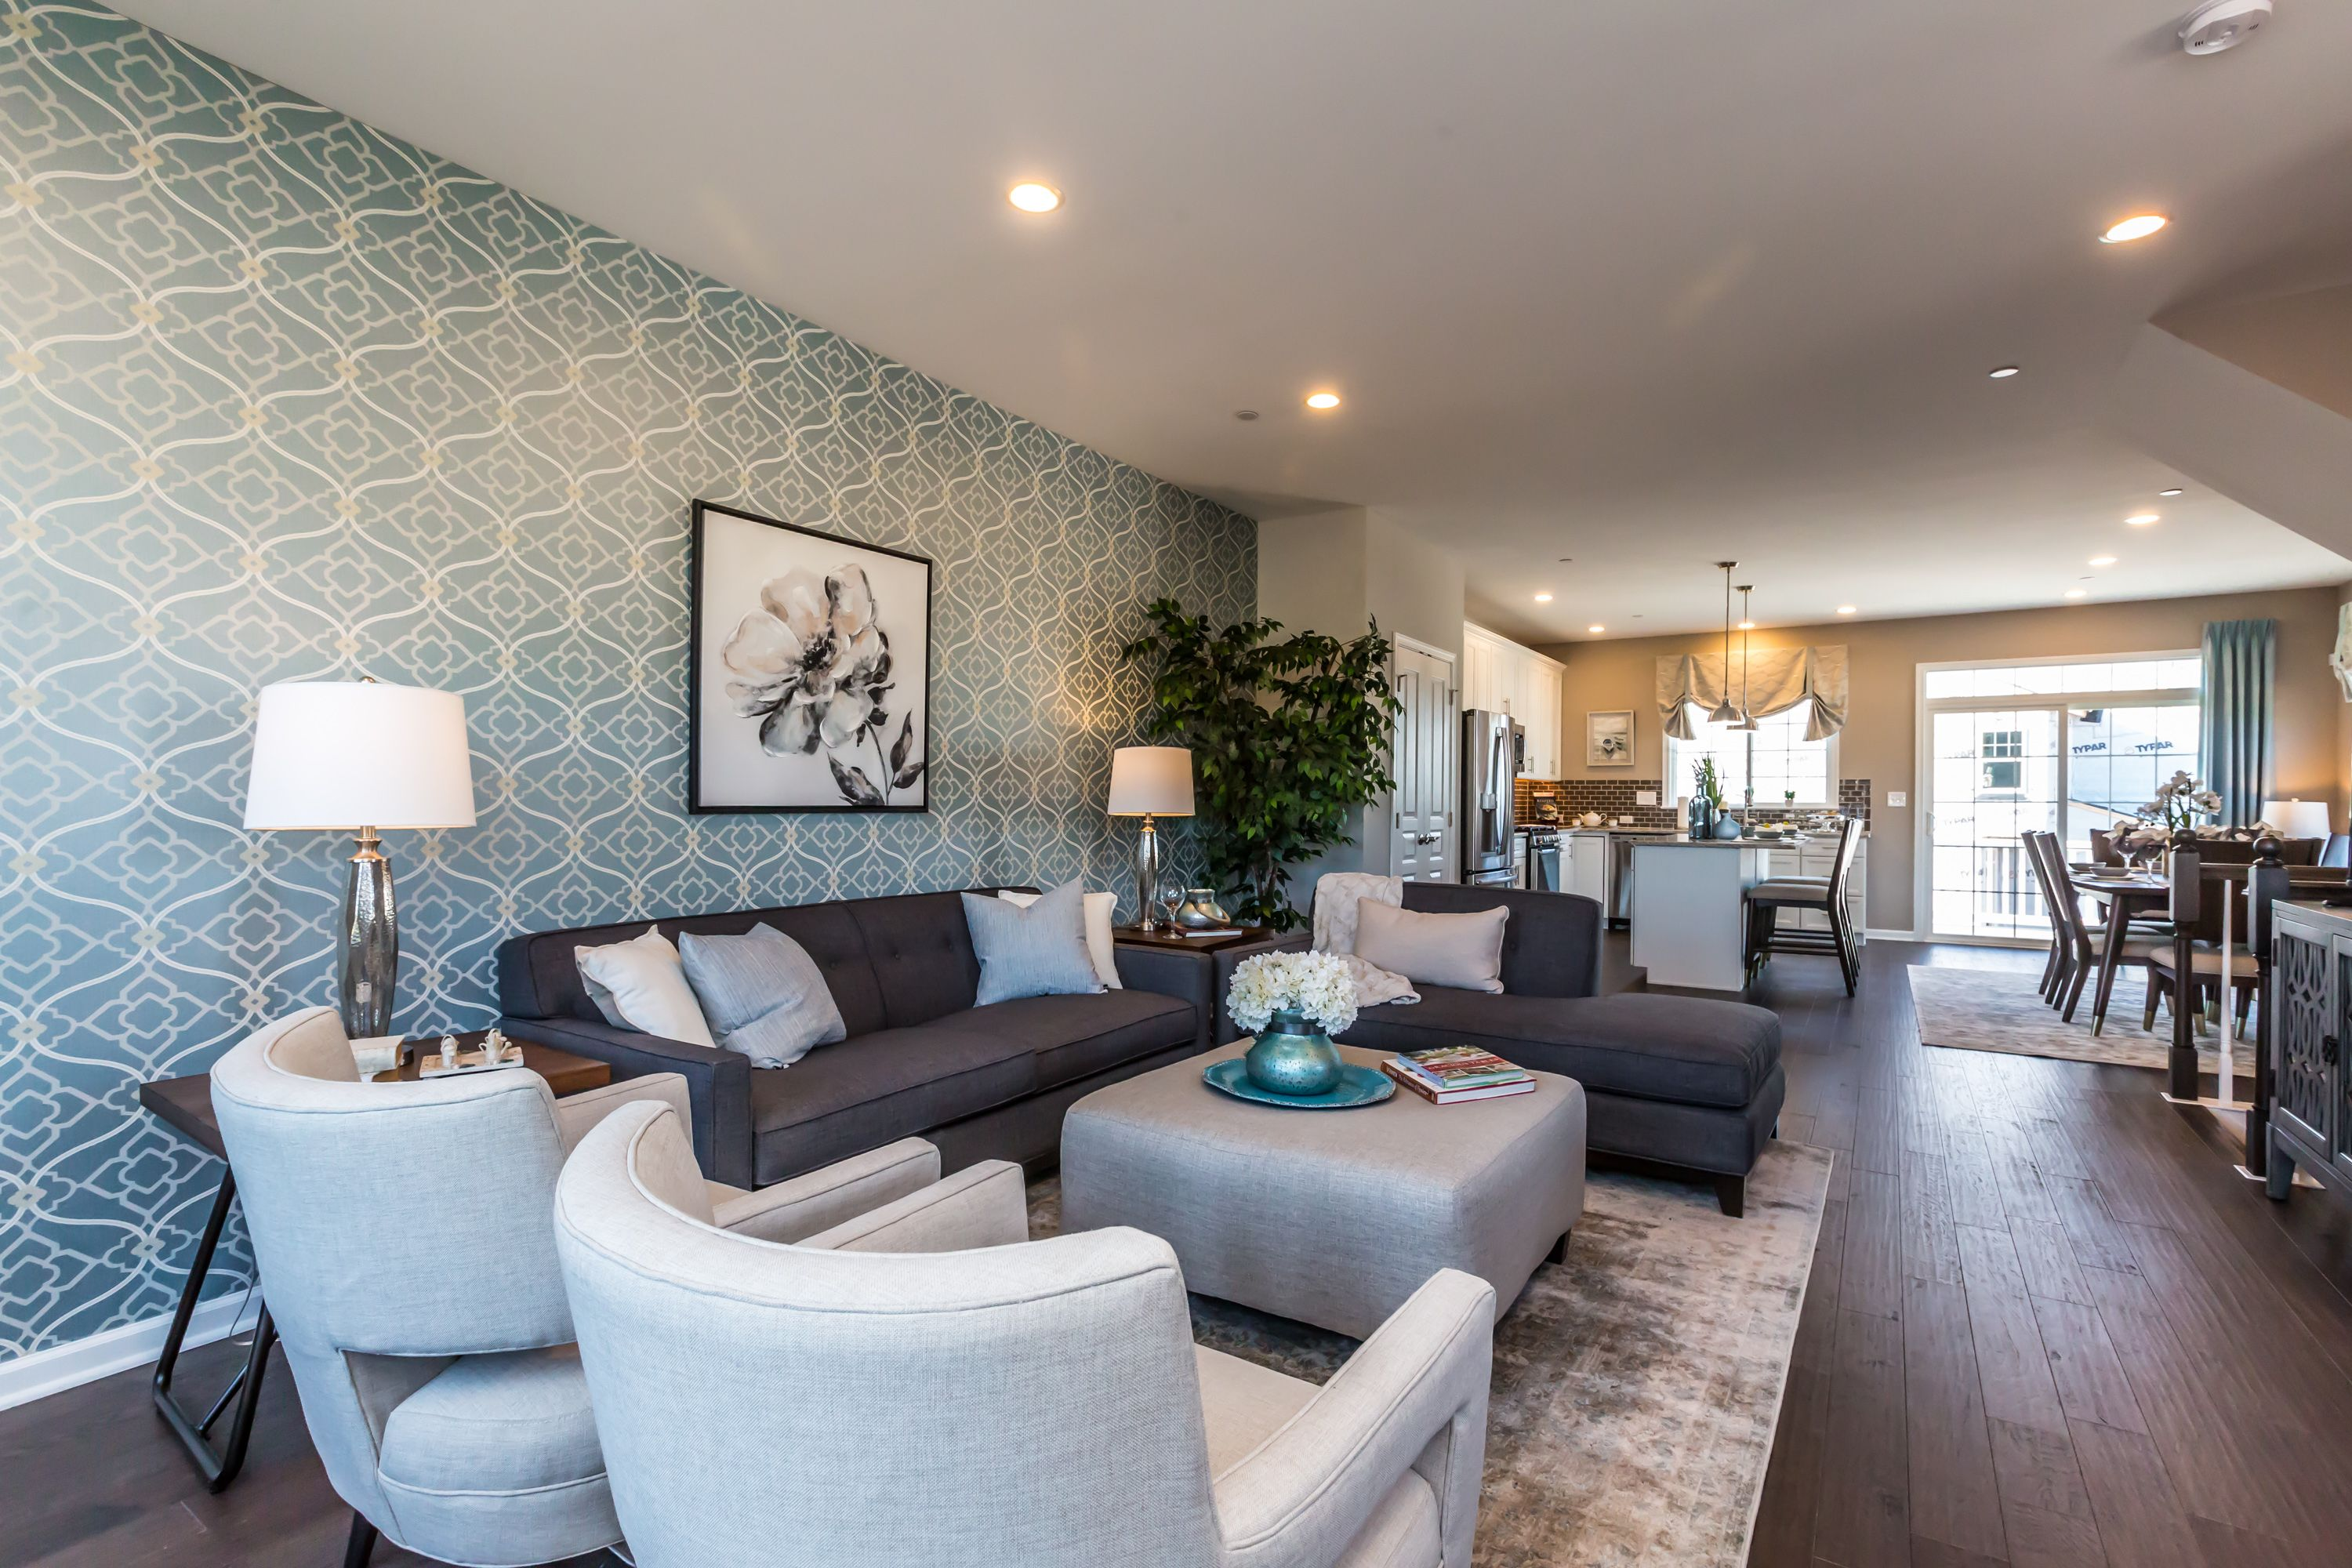 Living Area featured in the Newport By Rouse Chamberlin Homes in Philadelphia, PA